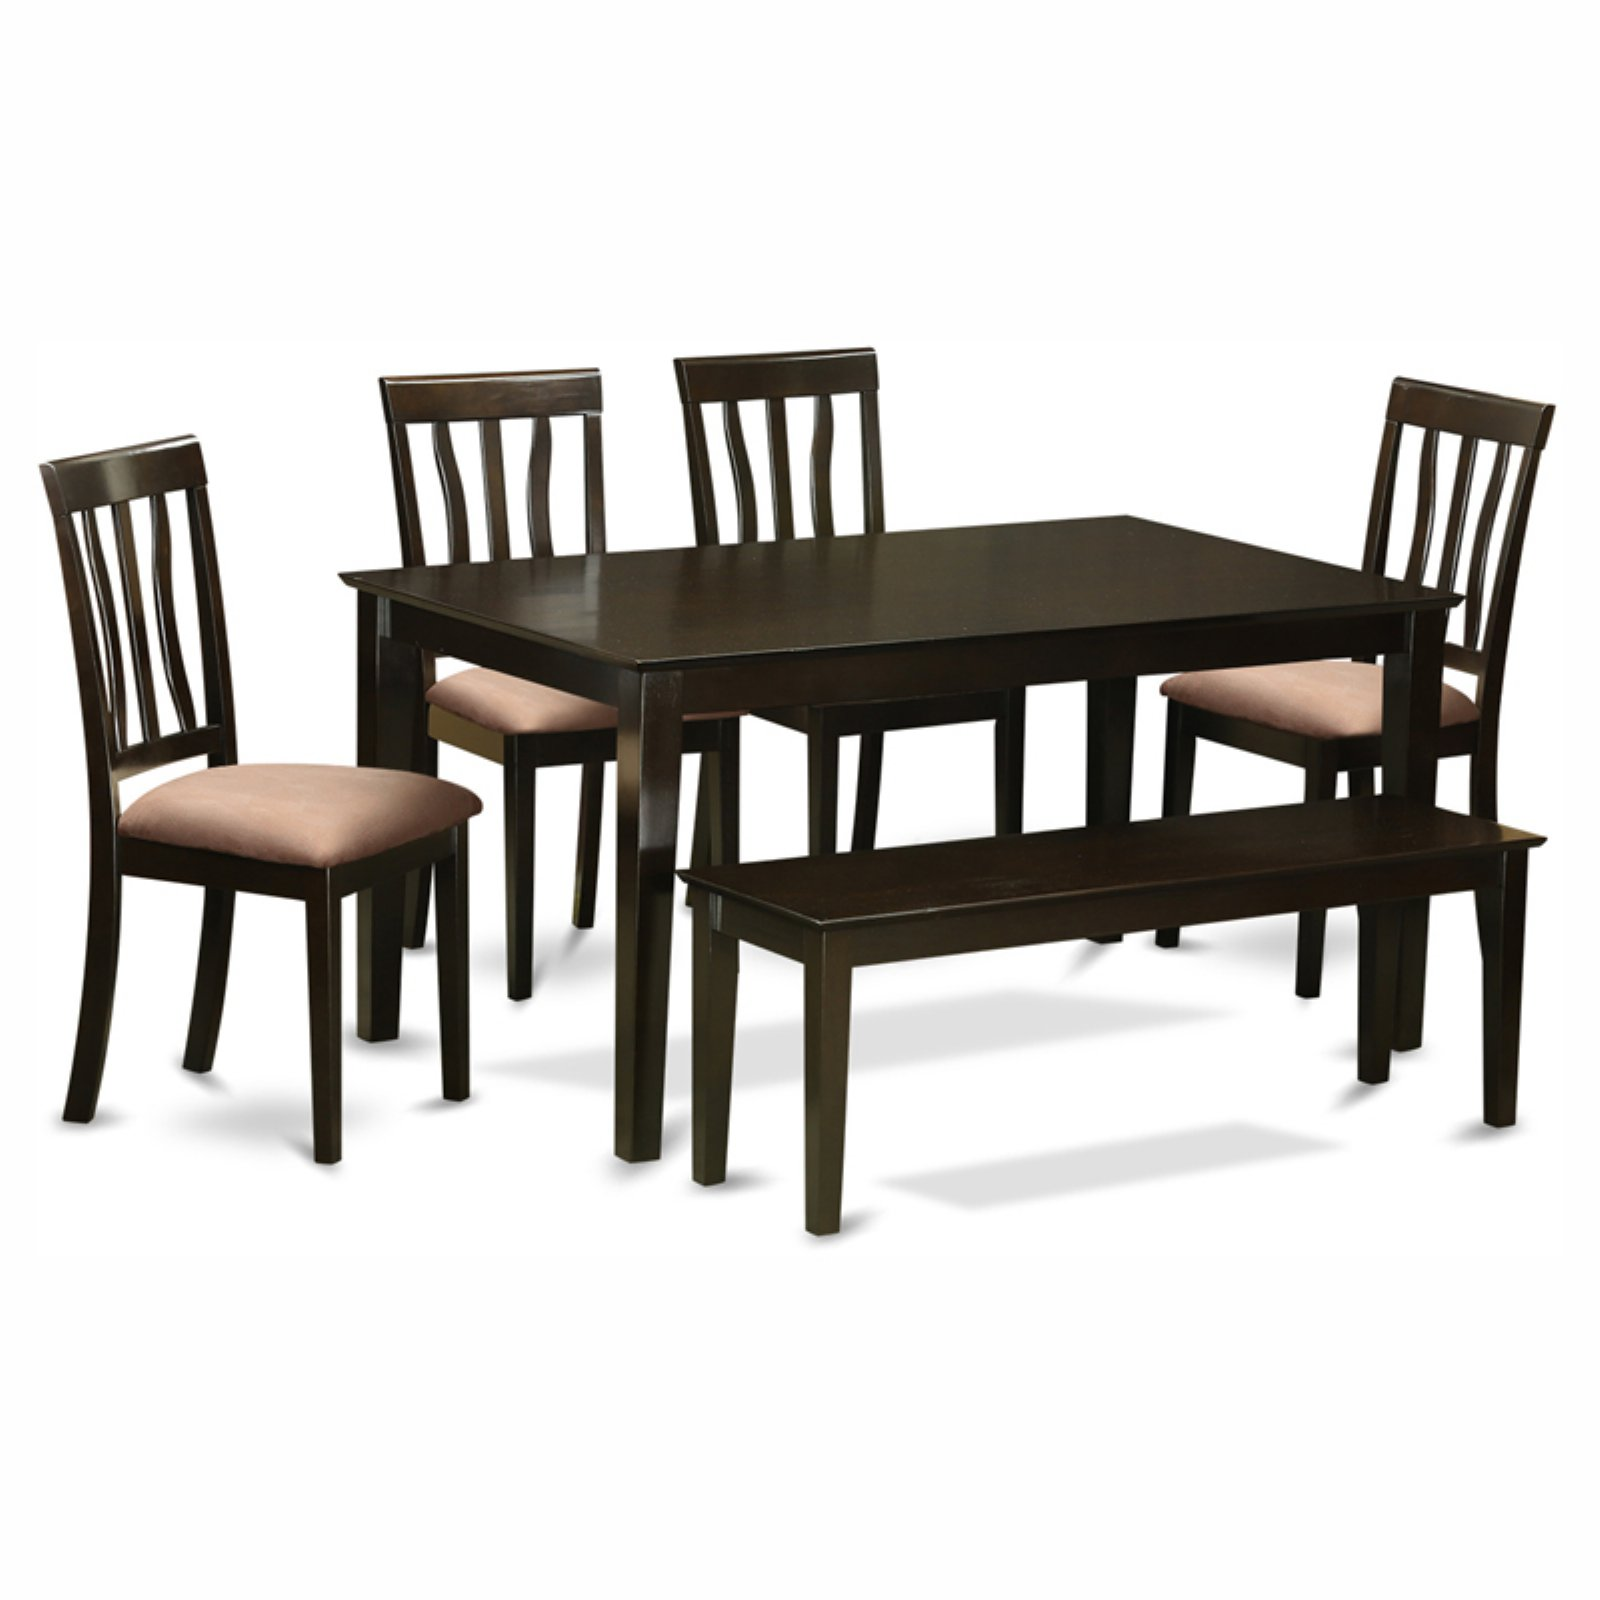 East West Furniture Capris 6 Piece Rectangular Dining Table Set with Antique Microfiber Seat Chairs